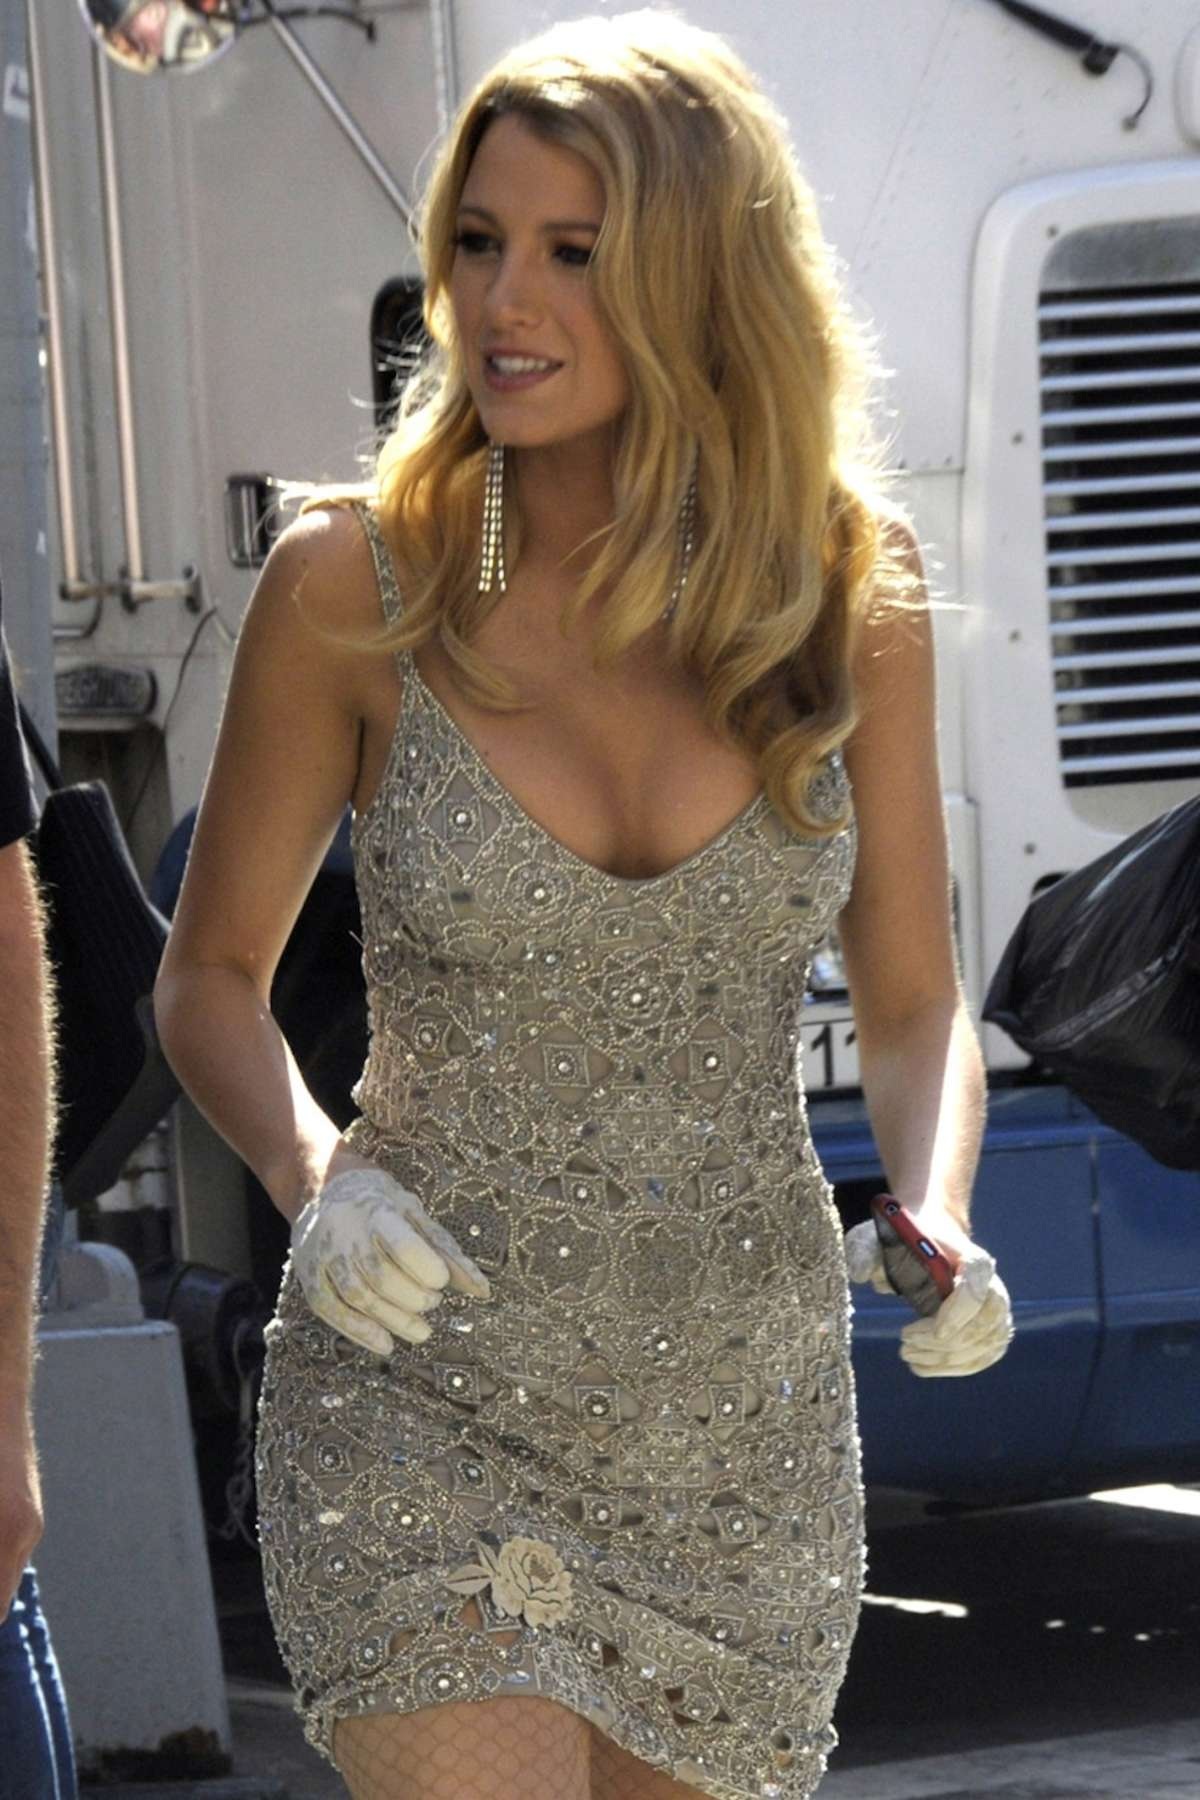 Cleavage Blake Lively nudes (74 photo), Pussy, Hot, Boobs, swimsuit 2020